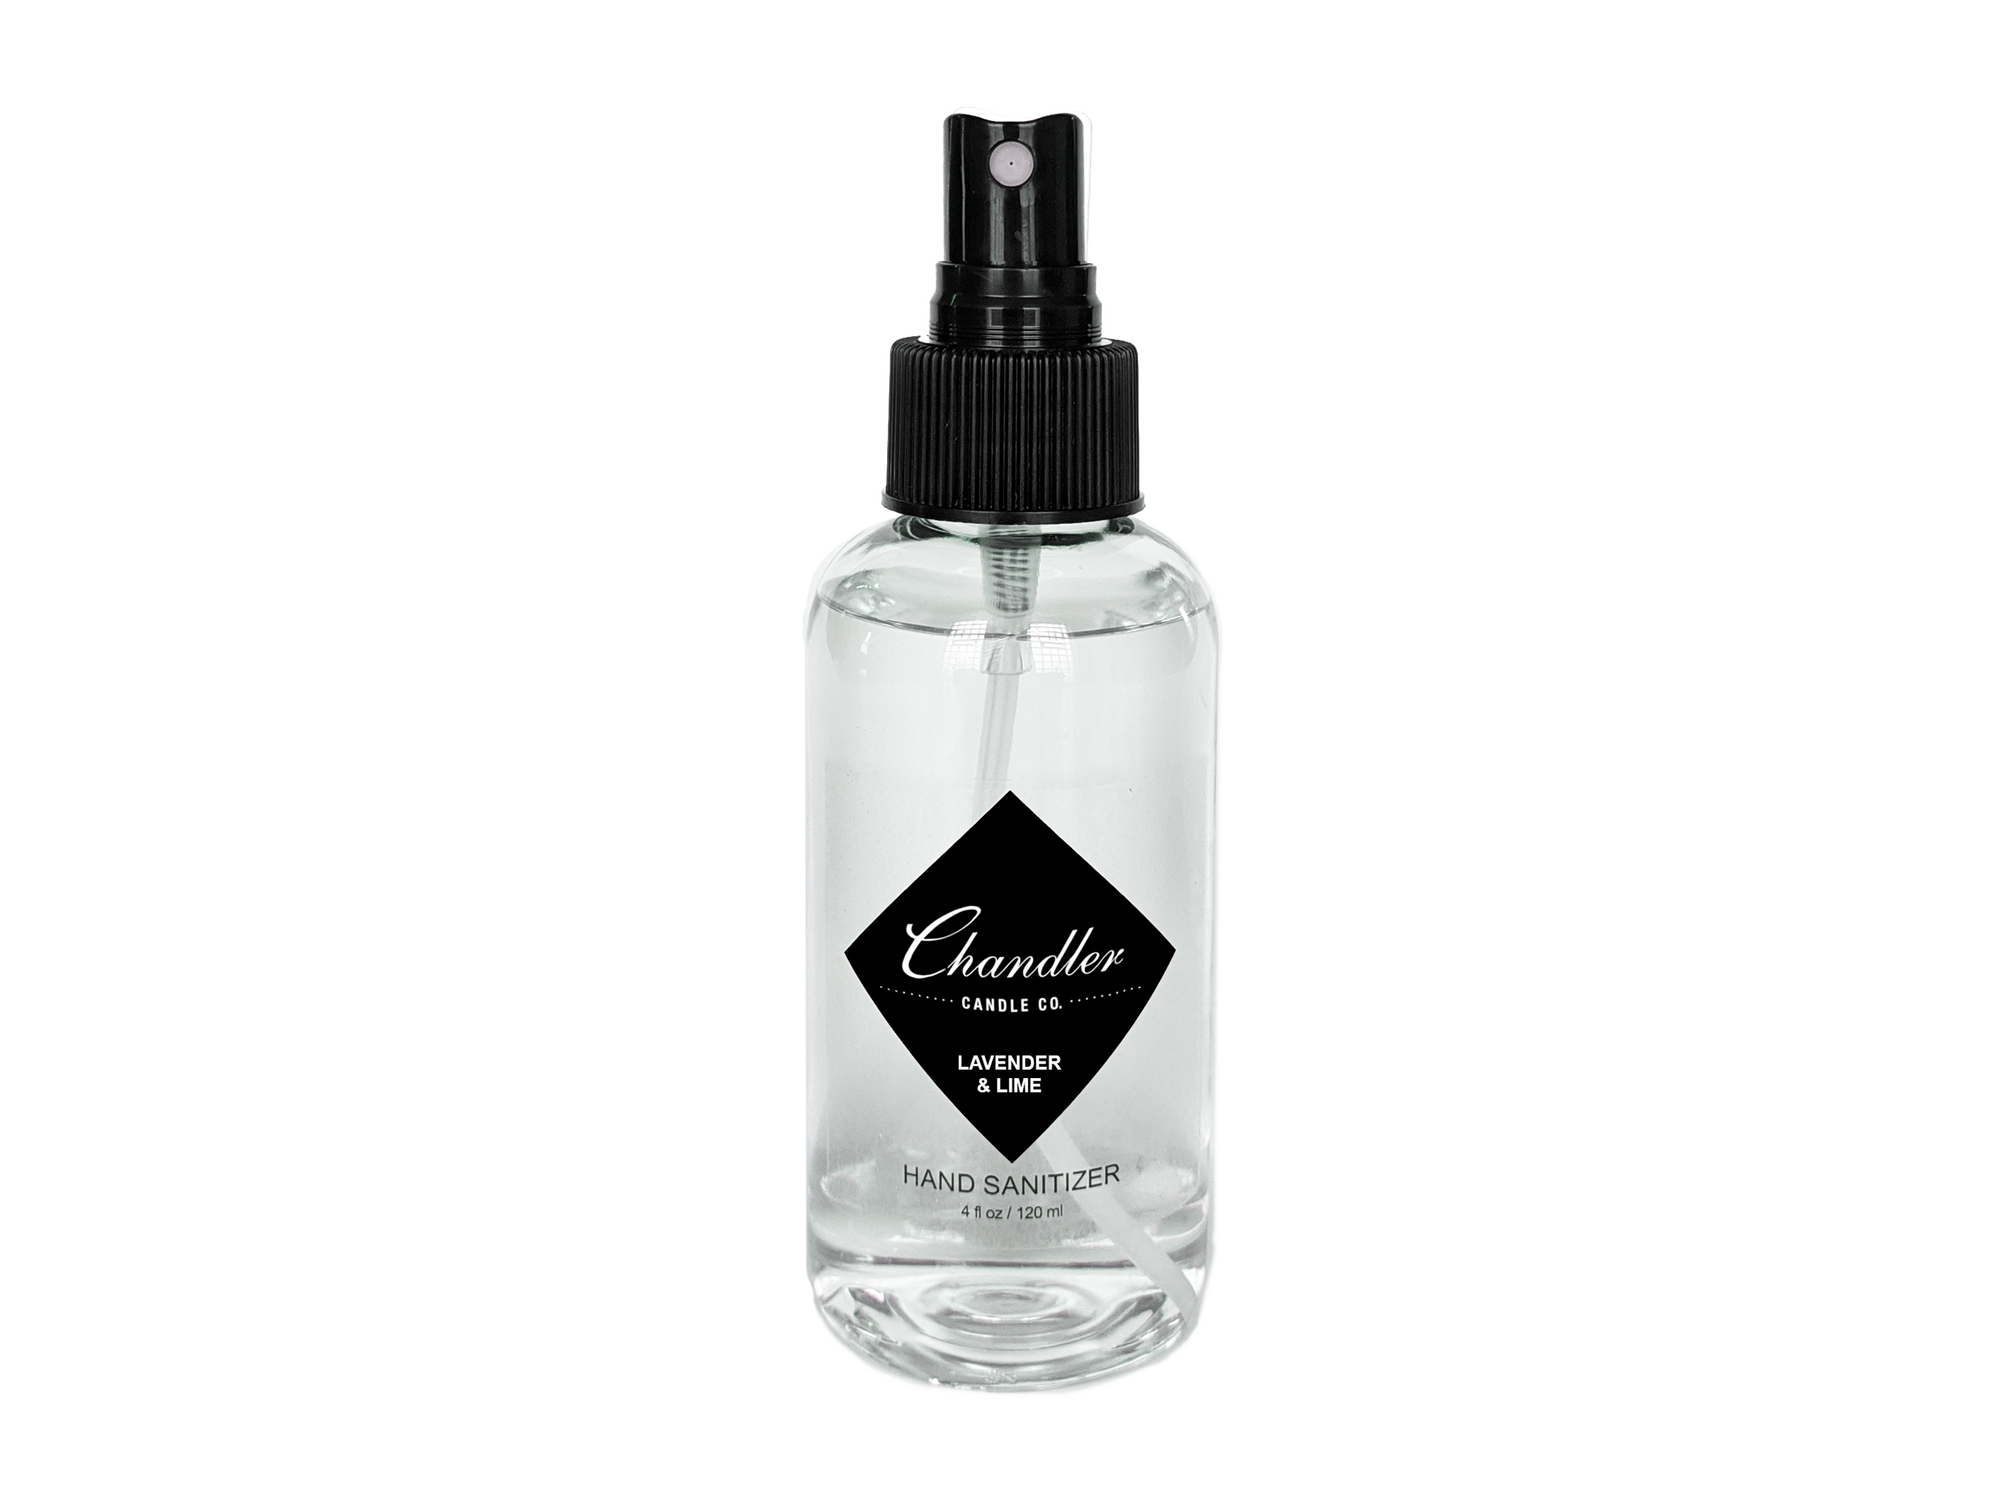 4oz Spray Hand Sanitizer